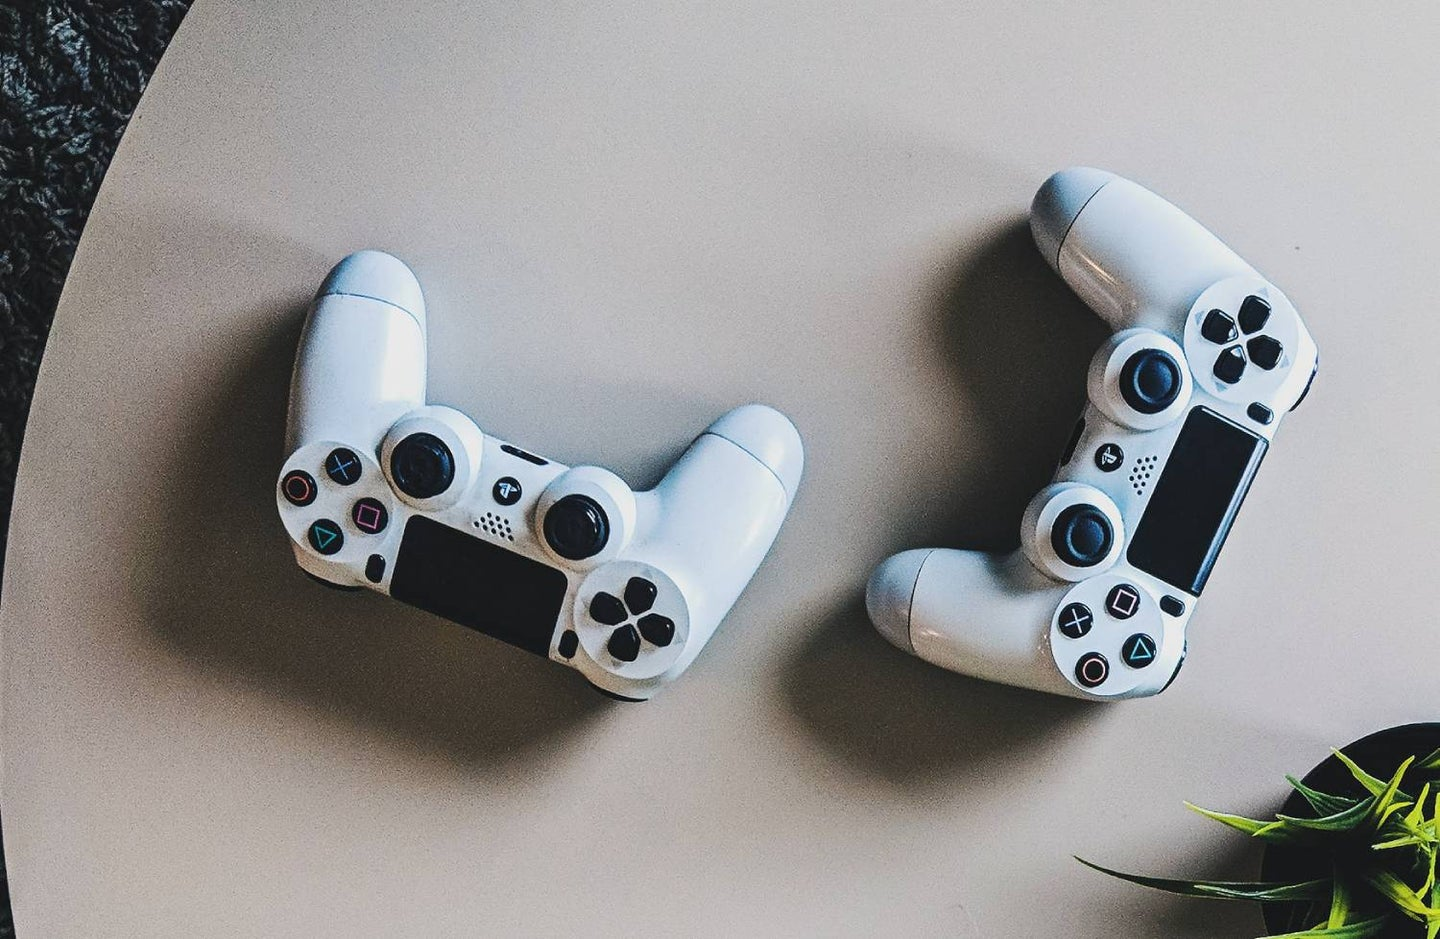 Videogame controllers